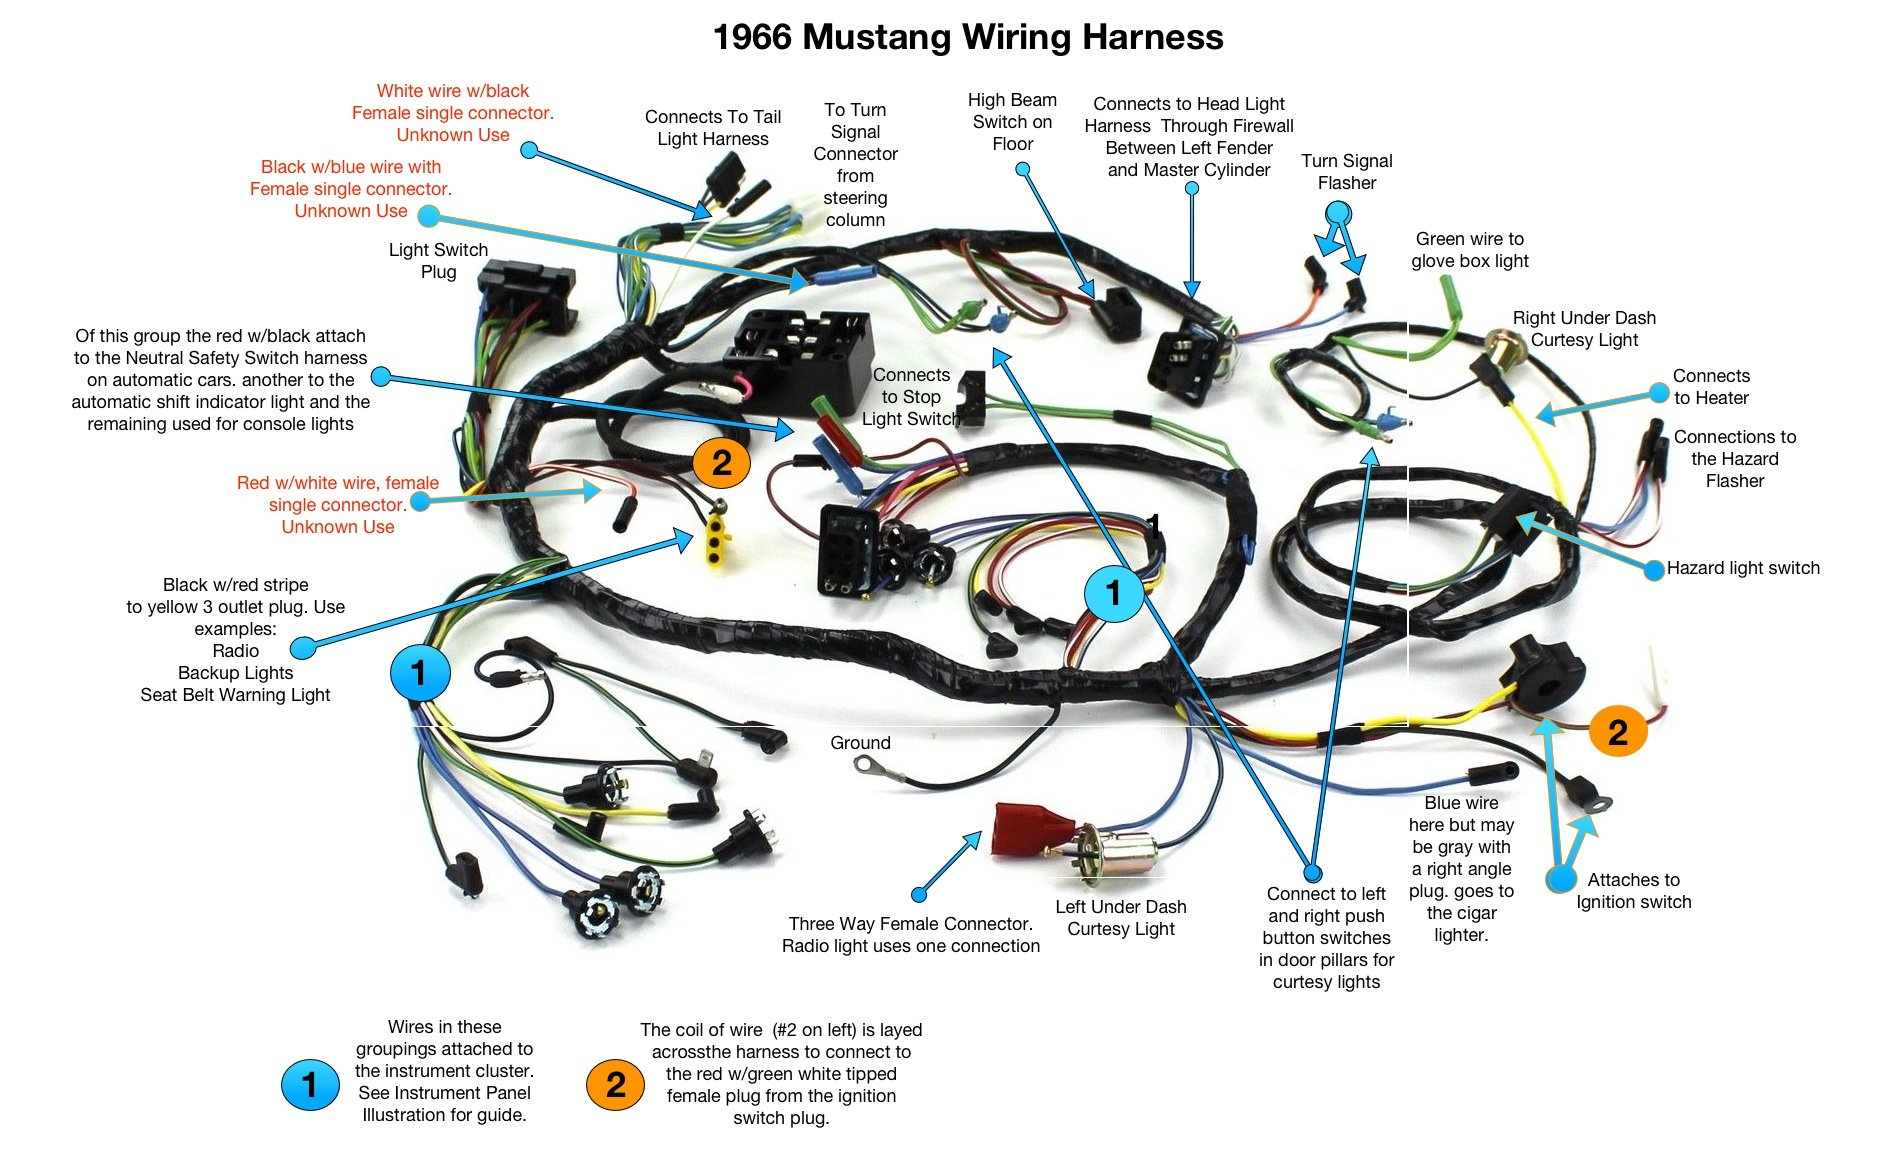 1967 Mustang Wiring Harness Diagram